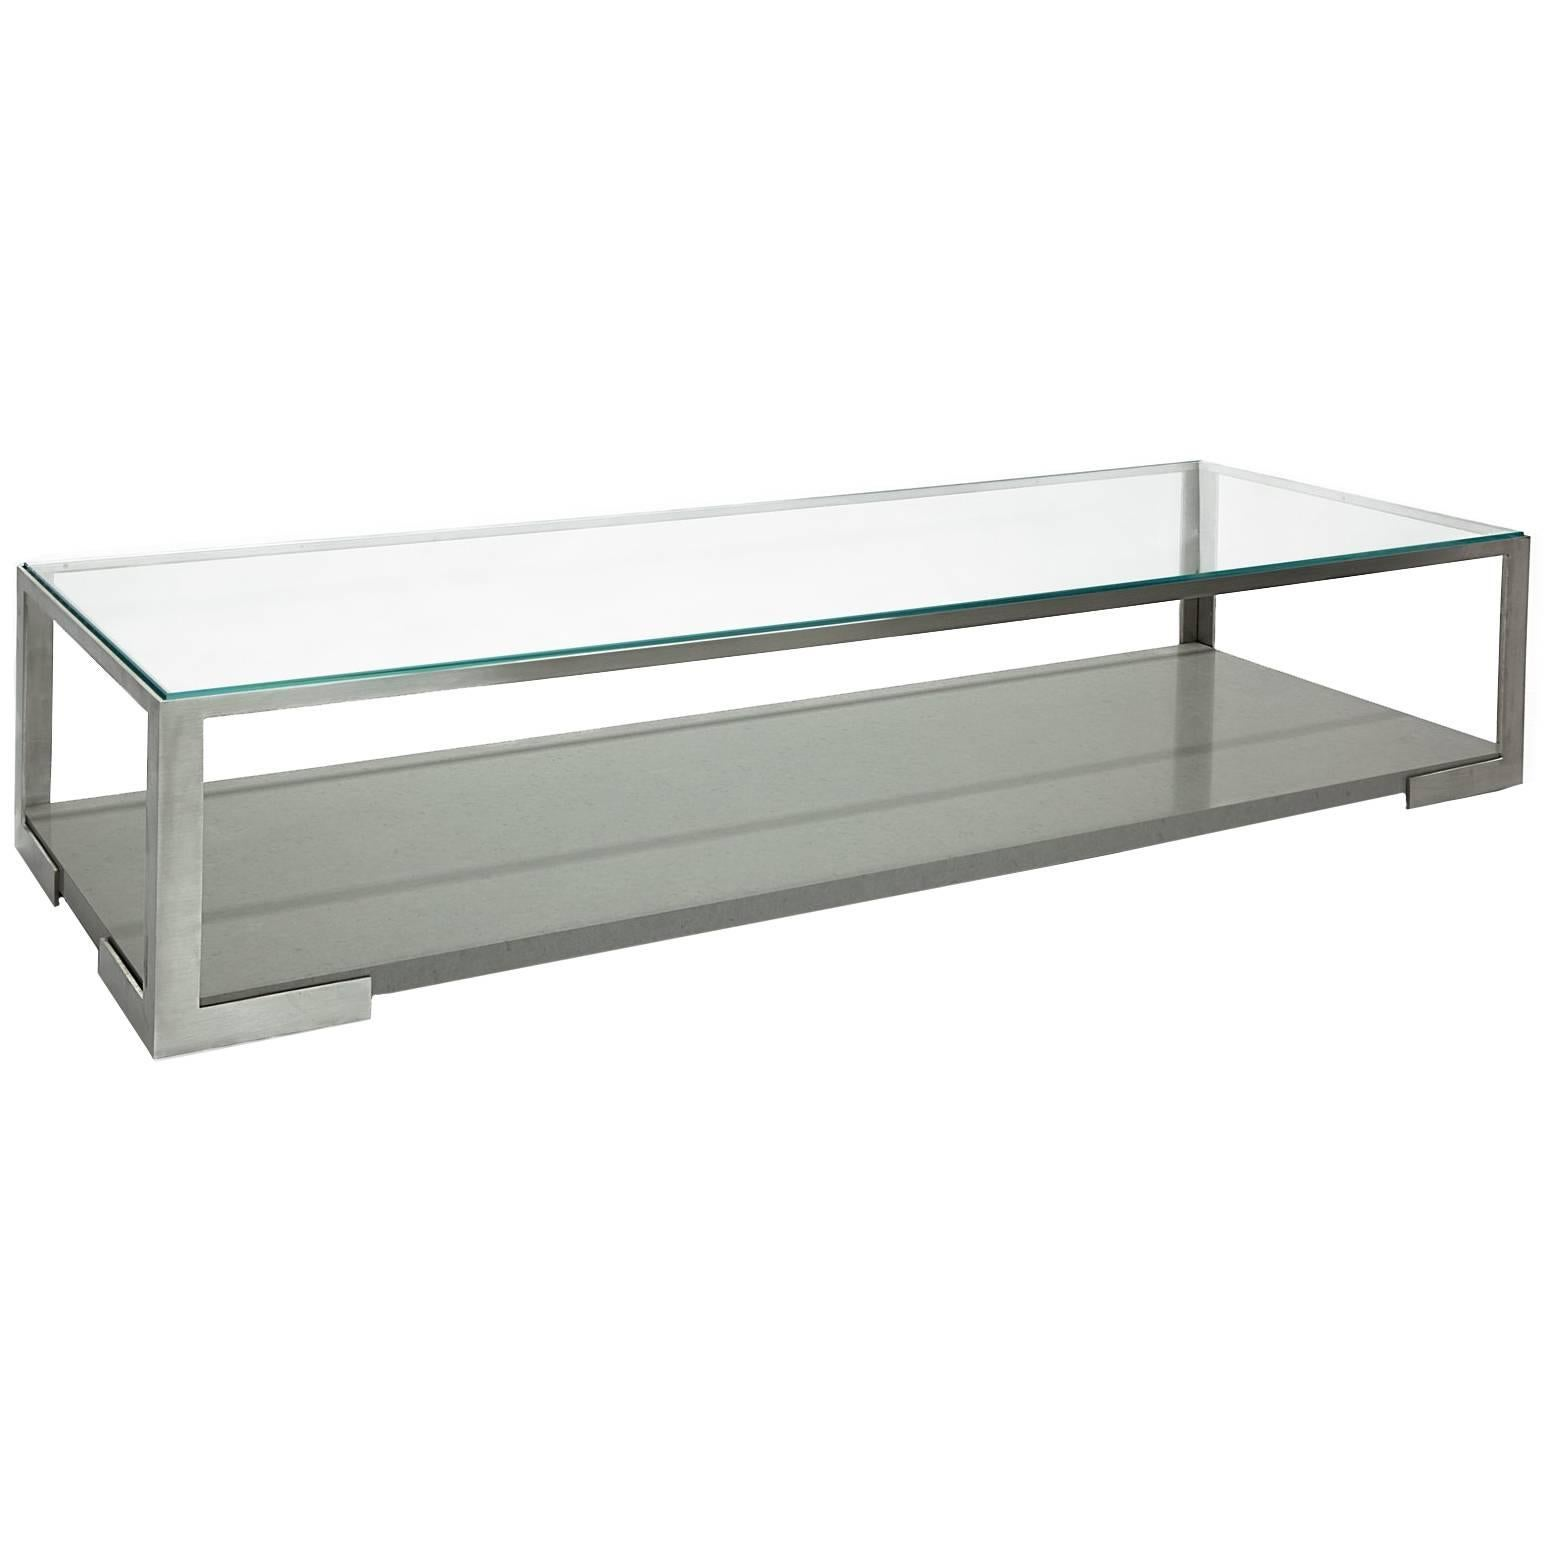 Geometrik Coffee Table, Contemporary Architectural Steel Coffee Table For  Sale At 1stdibs